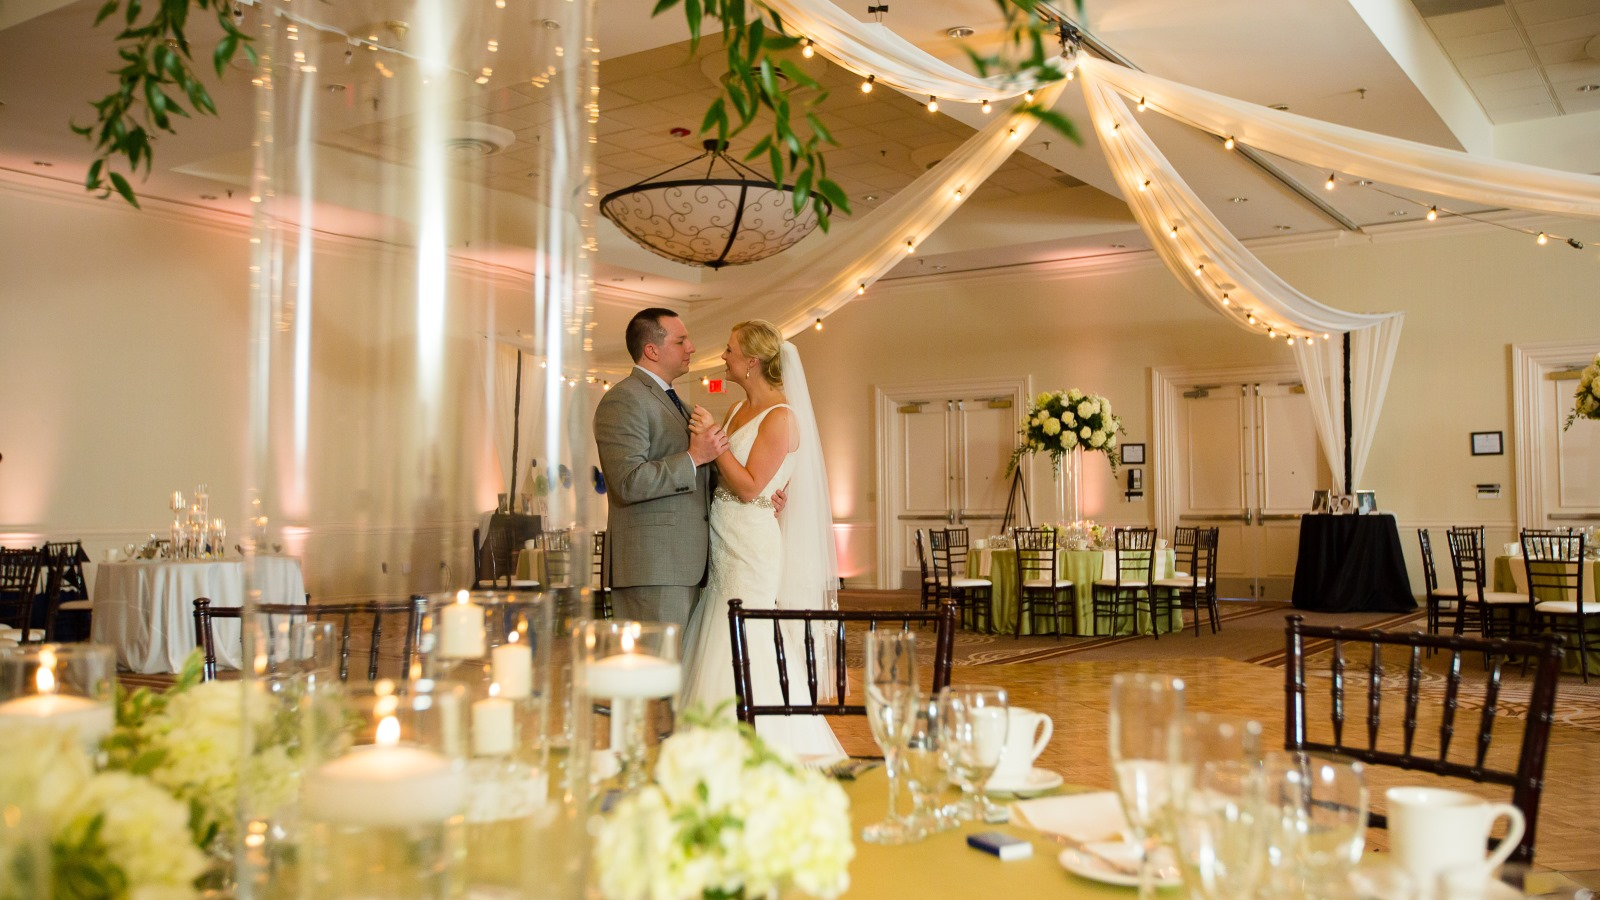 Downtown Raleigh Nc Wedding Venues Sheraton Raleigh Hotel